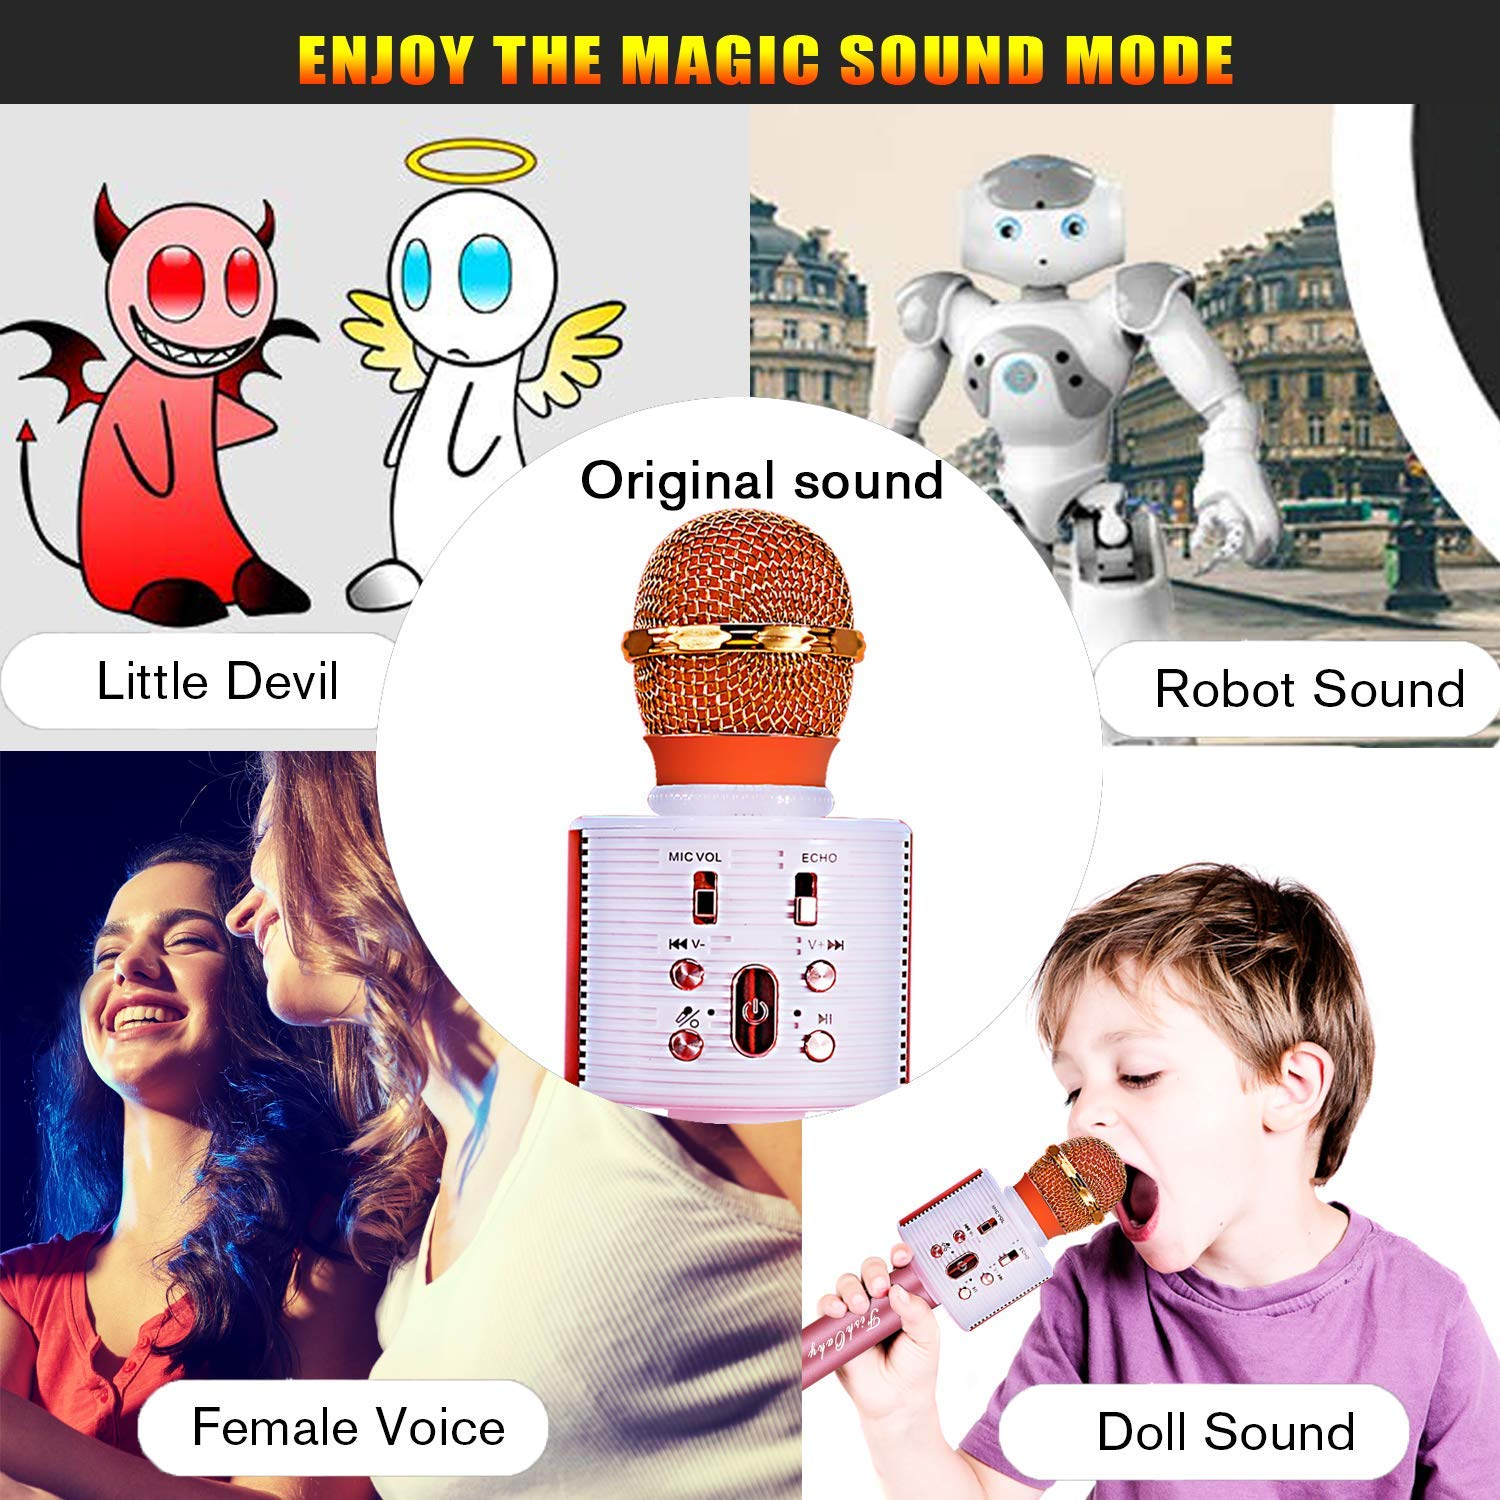 FishOaky Wireless Bluetooth Karaoke Microphone, Portable Kids Microphone Karaoke Player Speaker with LED & Music Singing Voice Recording for Home KTV Kids Outdoor Birthday Party (Rose Gold) by FishOaky (Image #6)